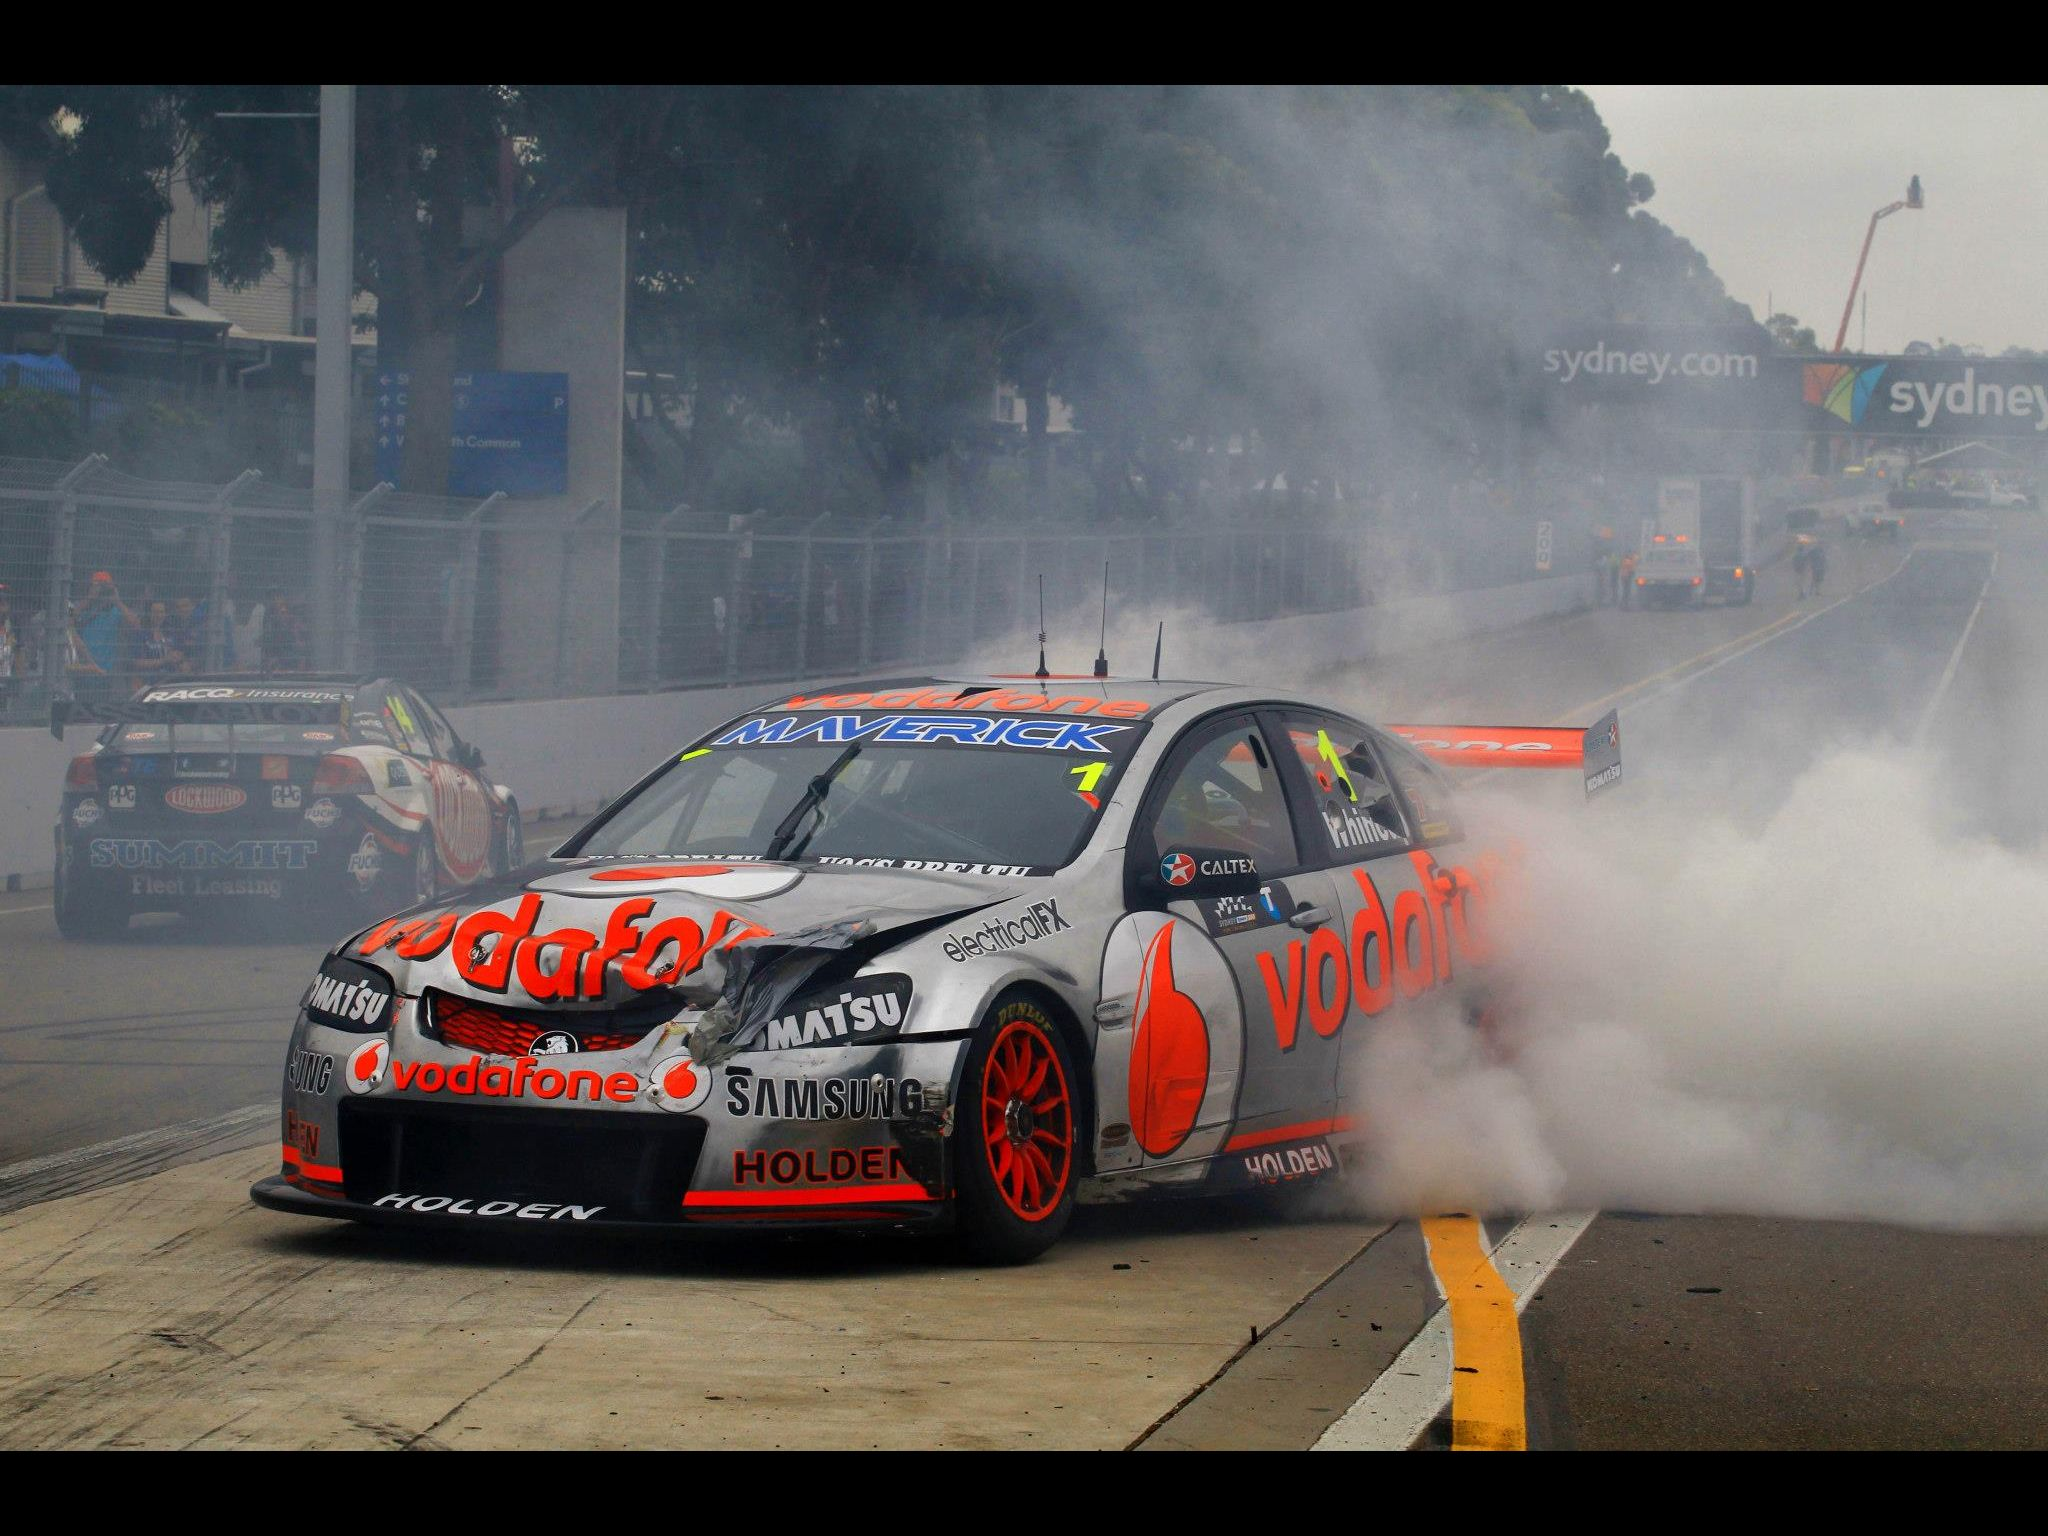 2012 V8 Supercar Champion Jamie Whincup In His Holden Commodore